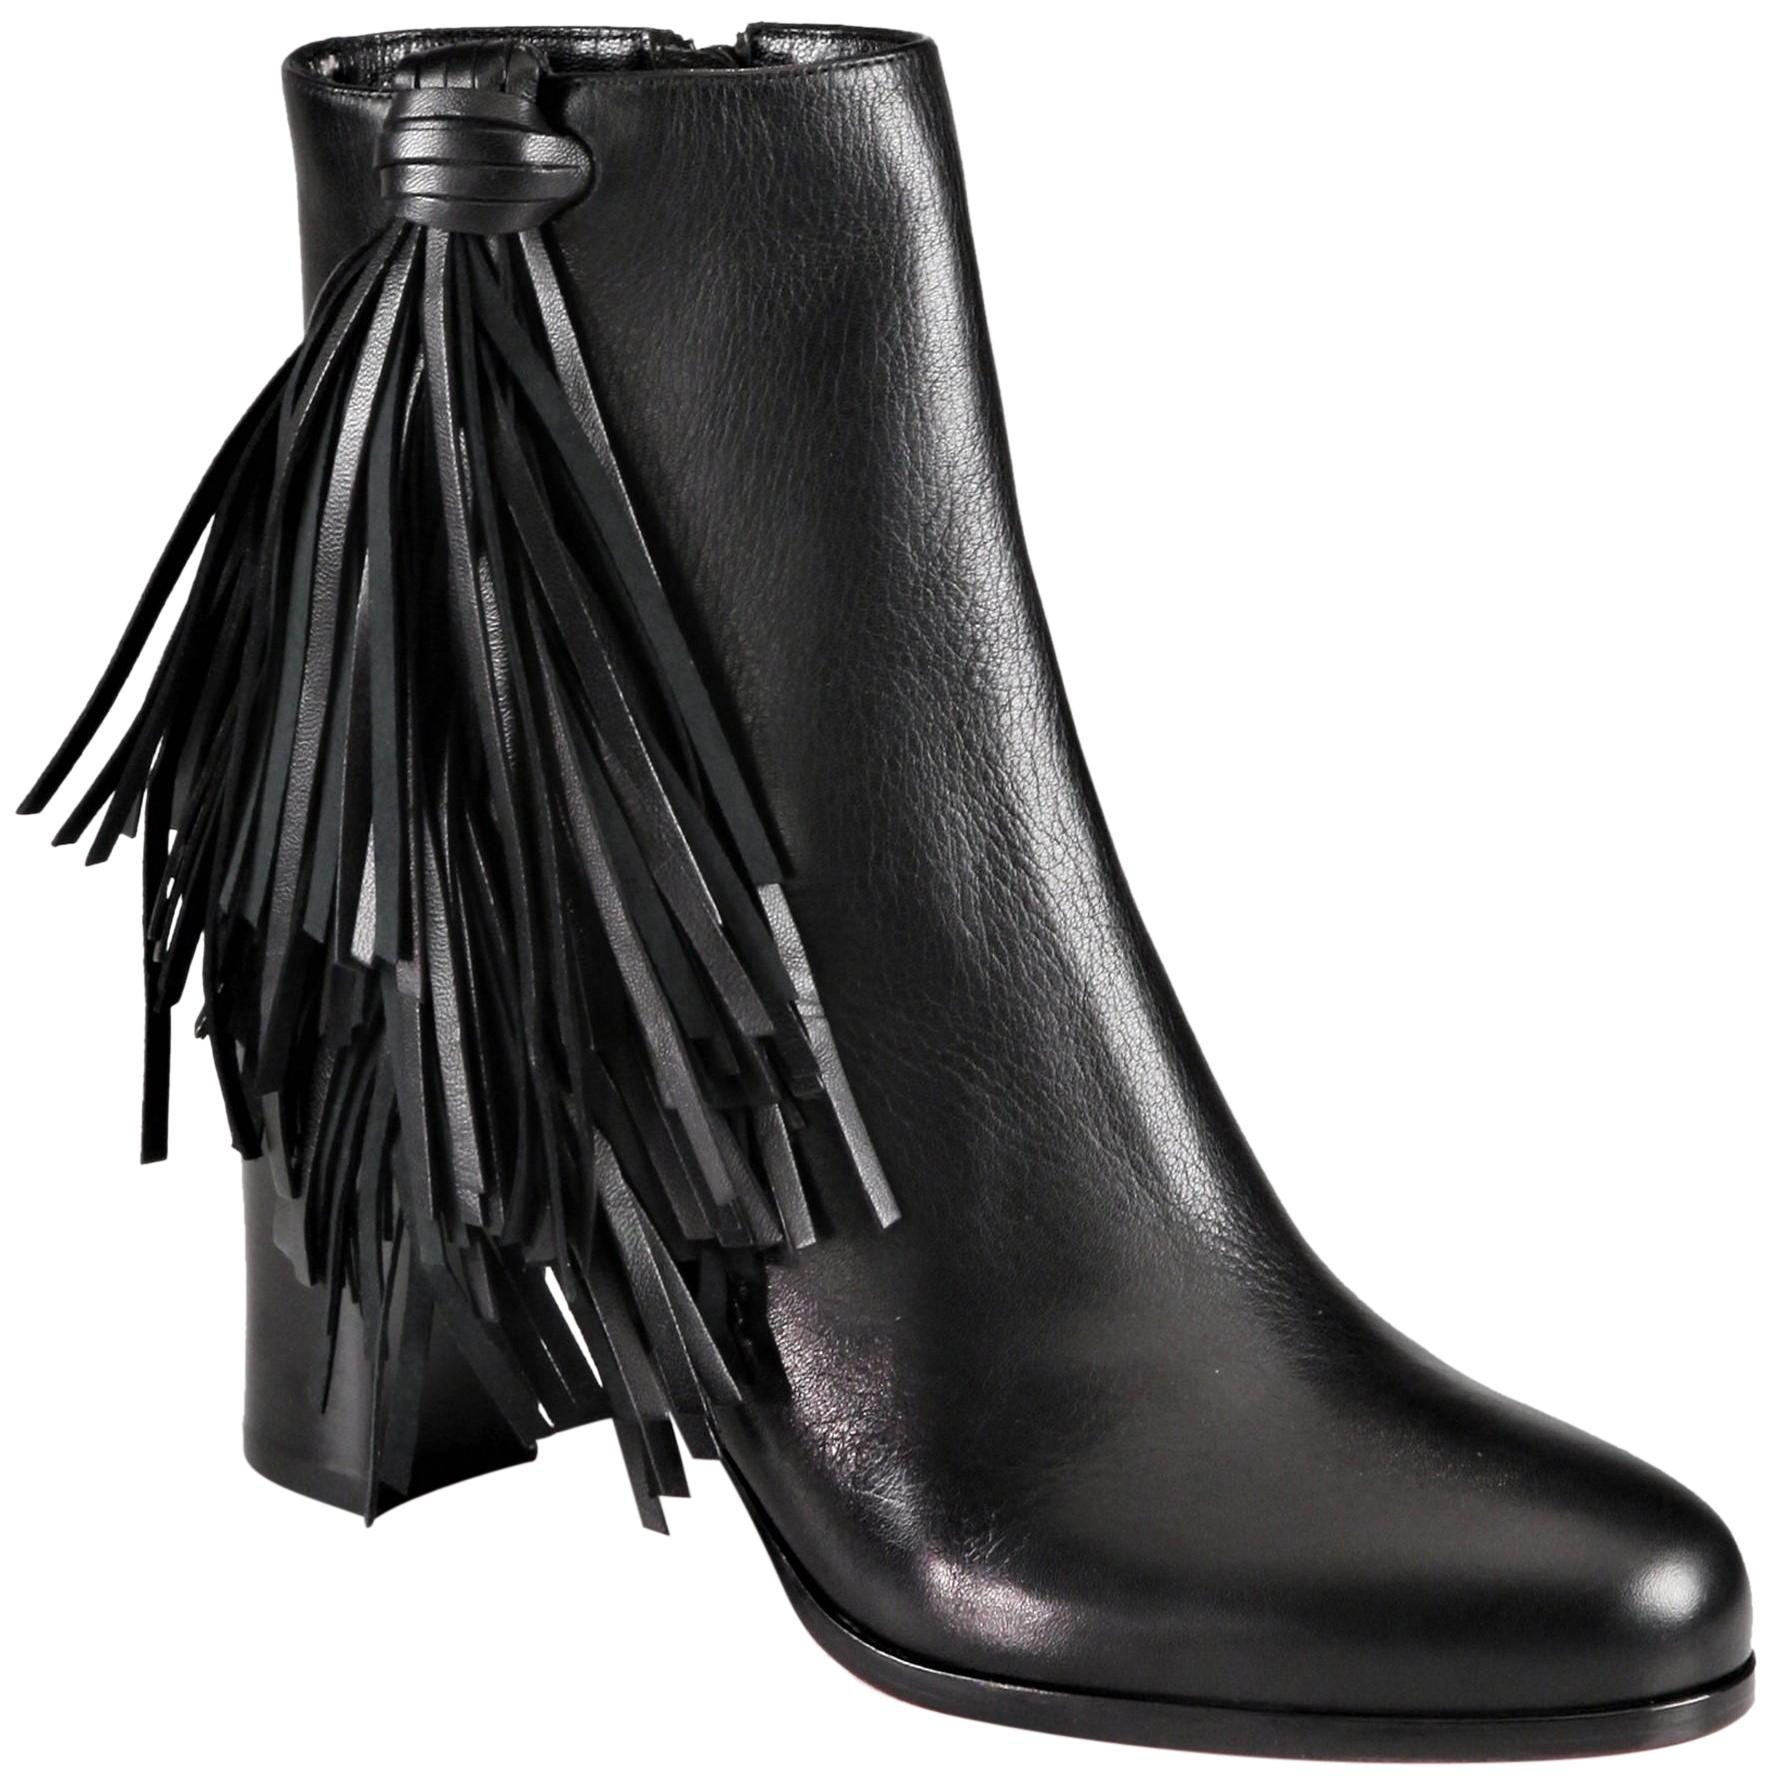 Christian Louboutin New Black Ankle 39 It Heel Women Lady Red Sole Toe Zip Leather Fringe Boots/Booties Size US 9 Regular (M, B)